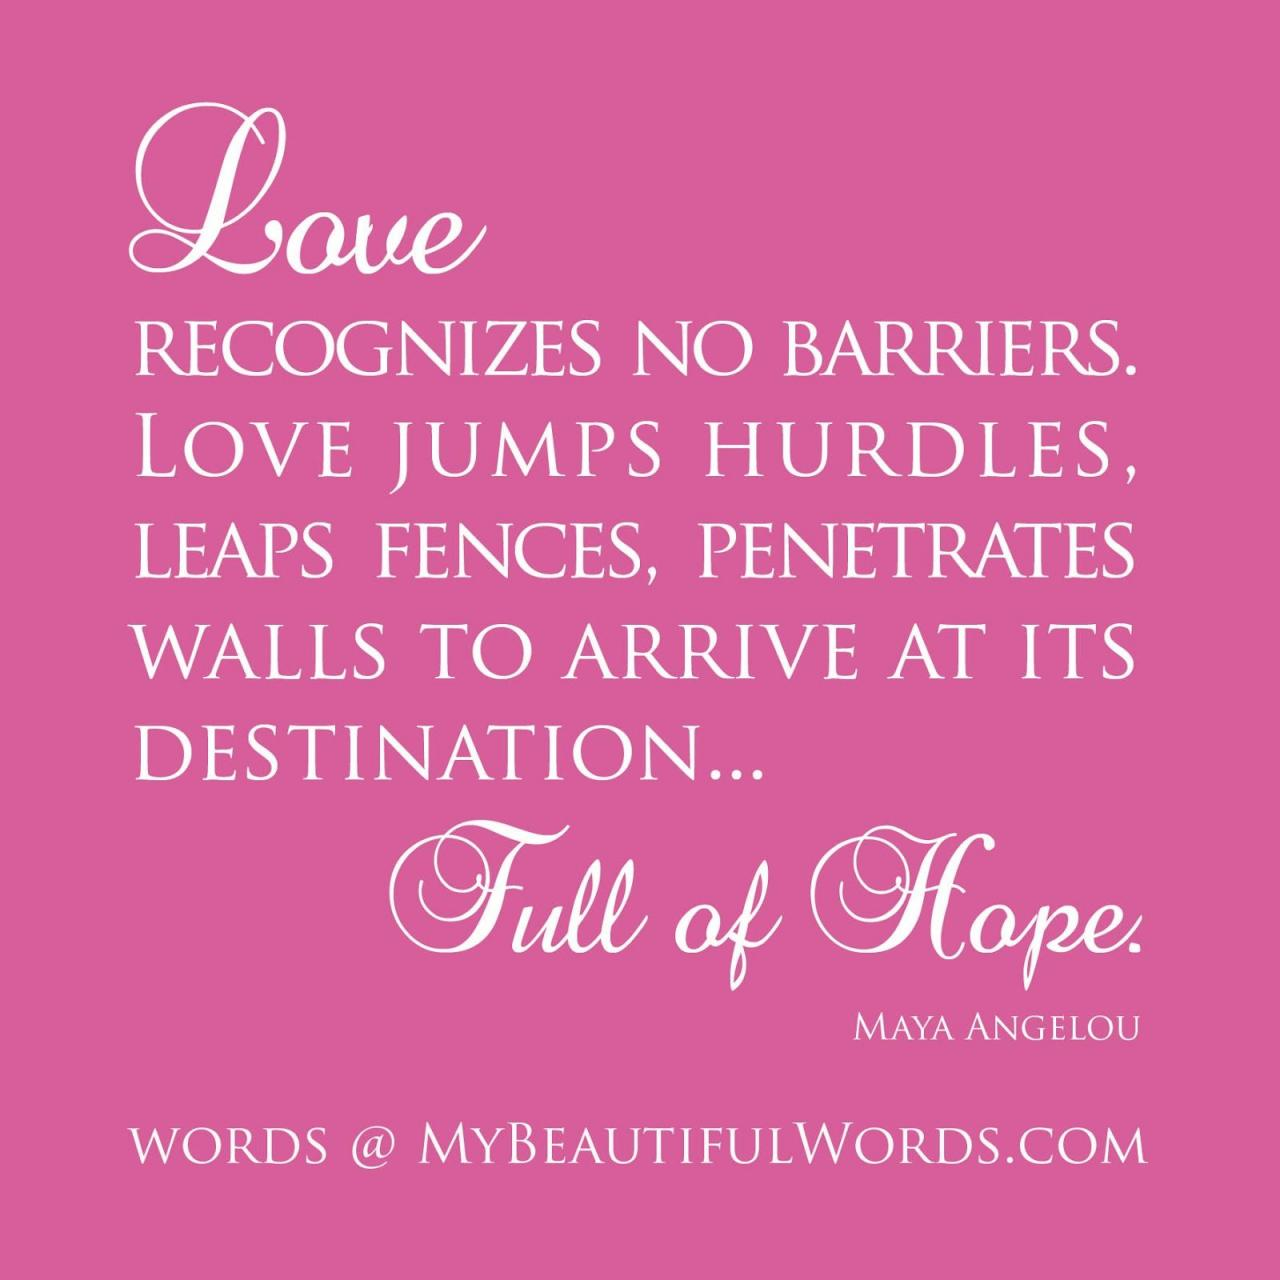 Motivational Inspirational Love Life Quotes Sayings Poems Poetry Pic Picture P O Image Friendship Famous Quotations Proverbs